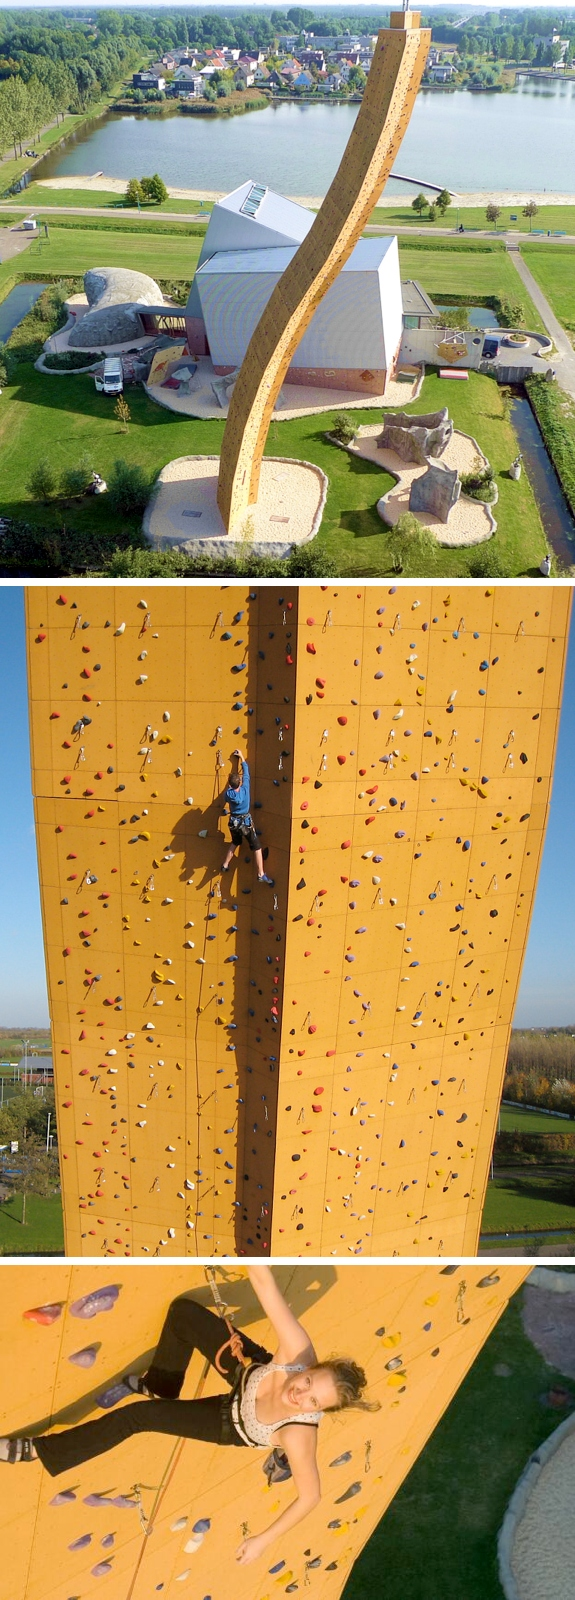 holland worlds highest climbing wall The Worlds Tallest Climbing Wall